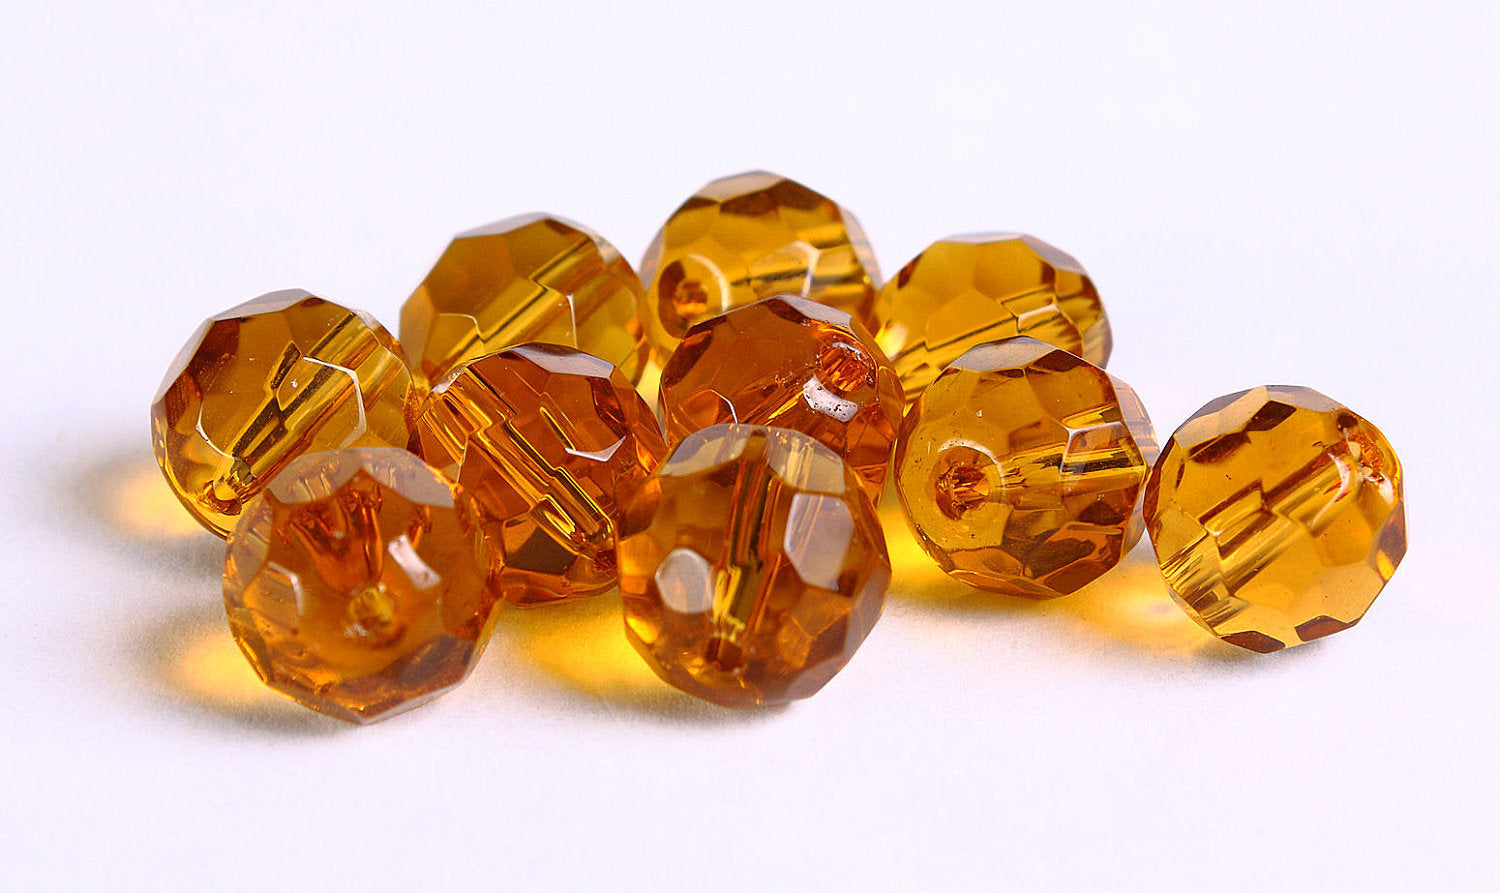 10mm Topaz brown firepolish faceted round glass bead - Faceted beads - Rich color beads - 10 pieces (240)